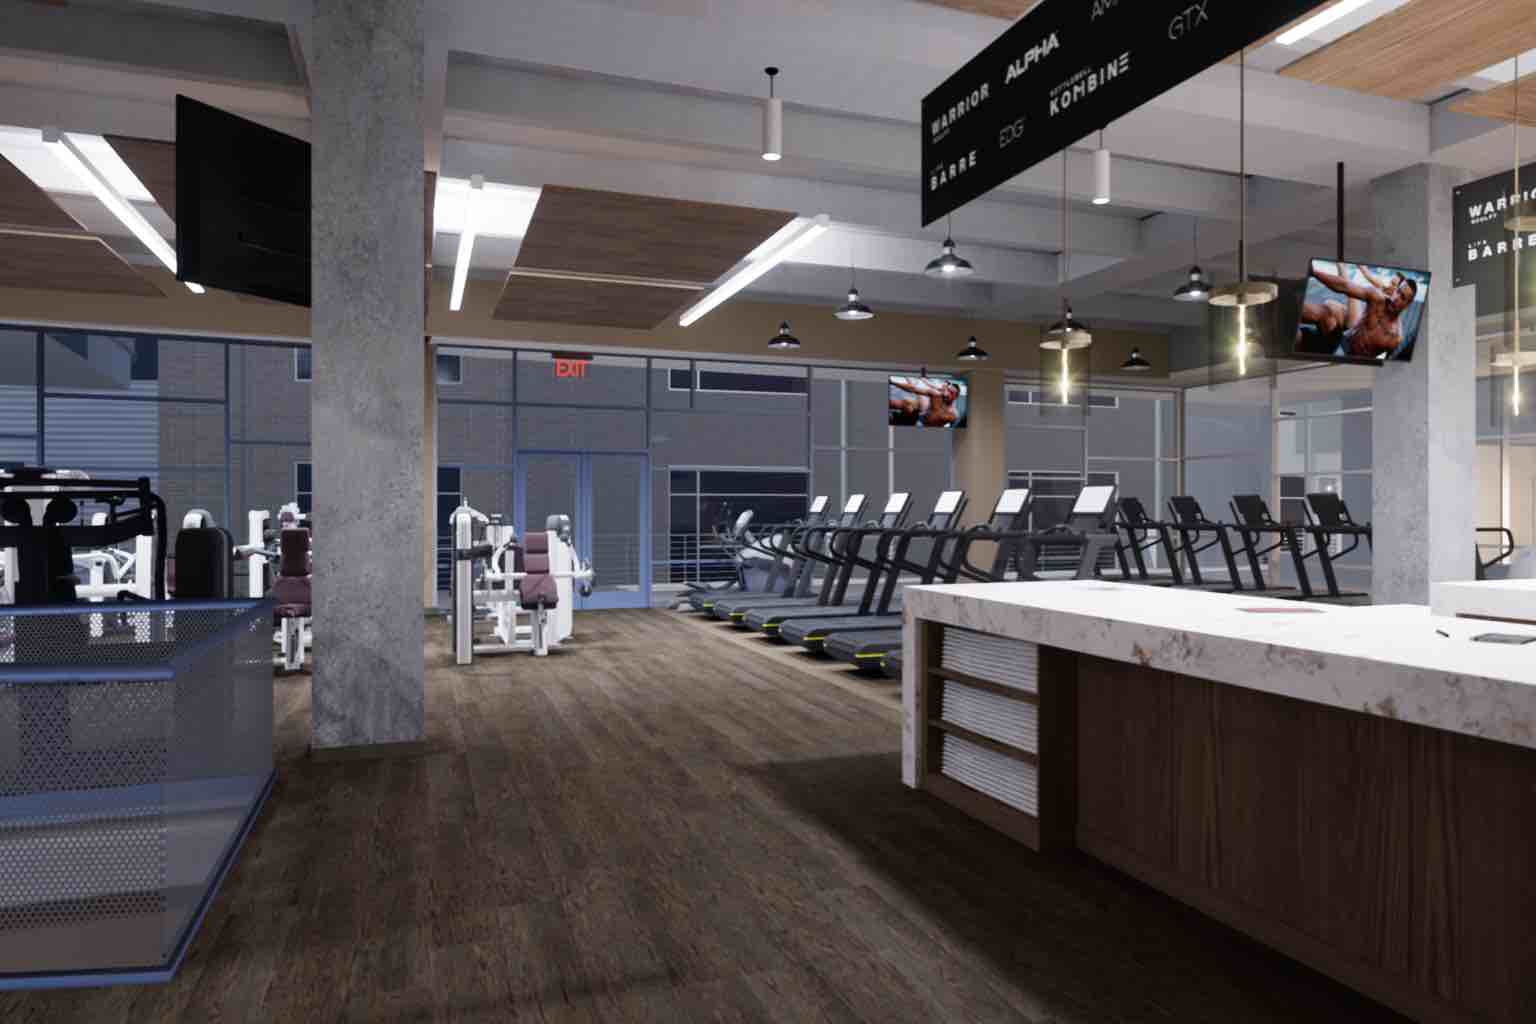 the training desk with treadmills on the fitness floor in the background